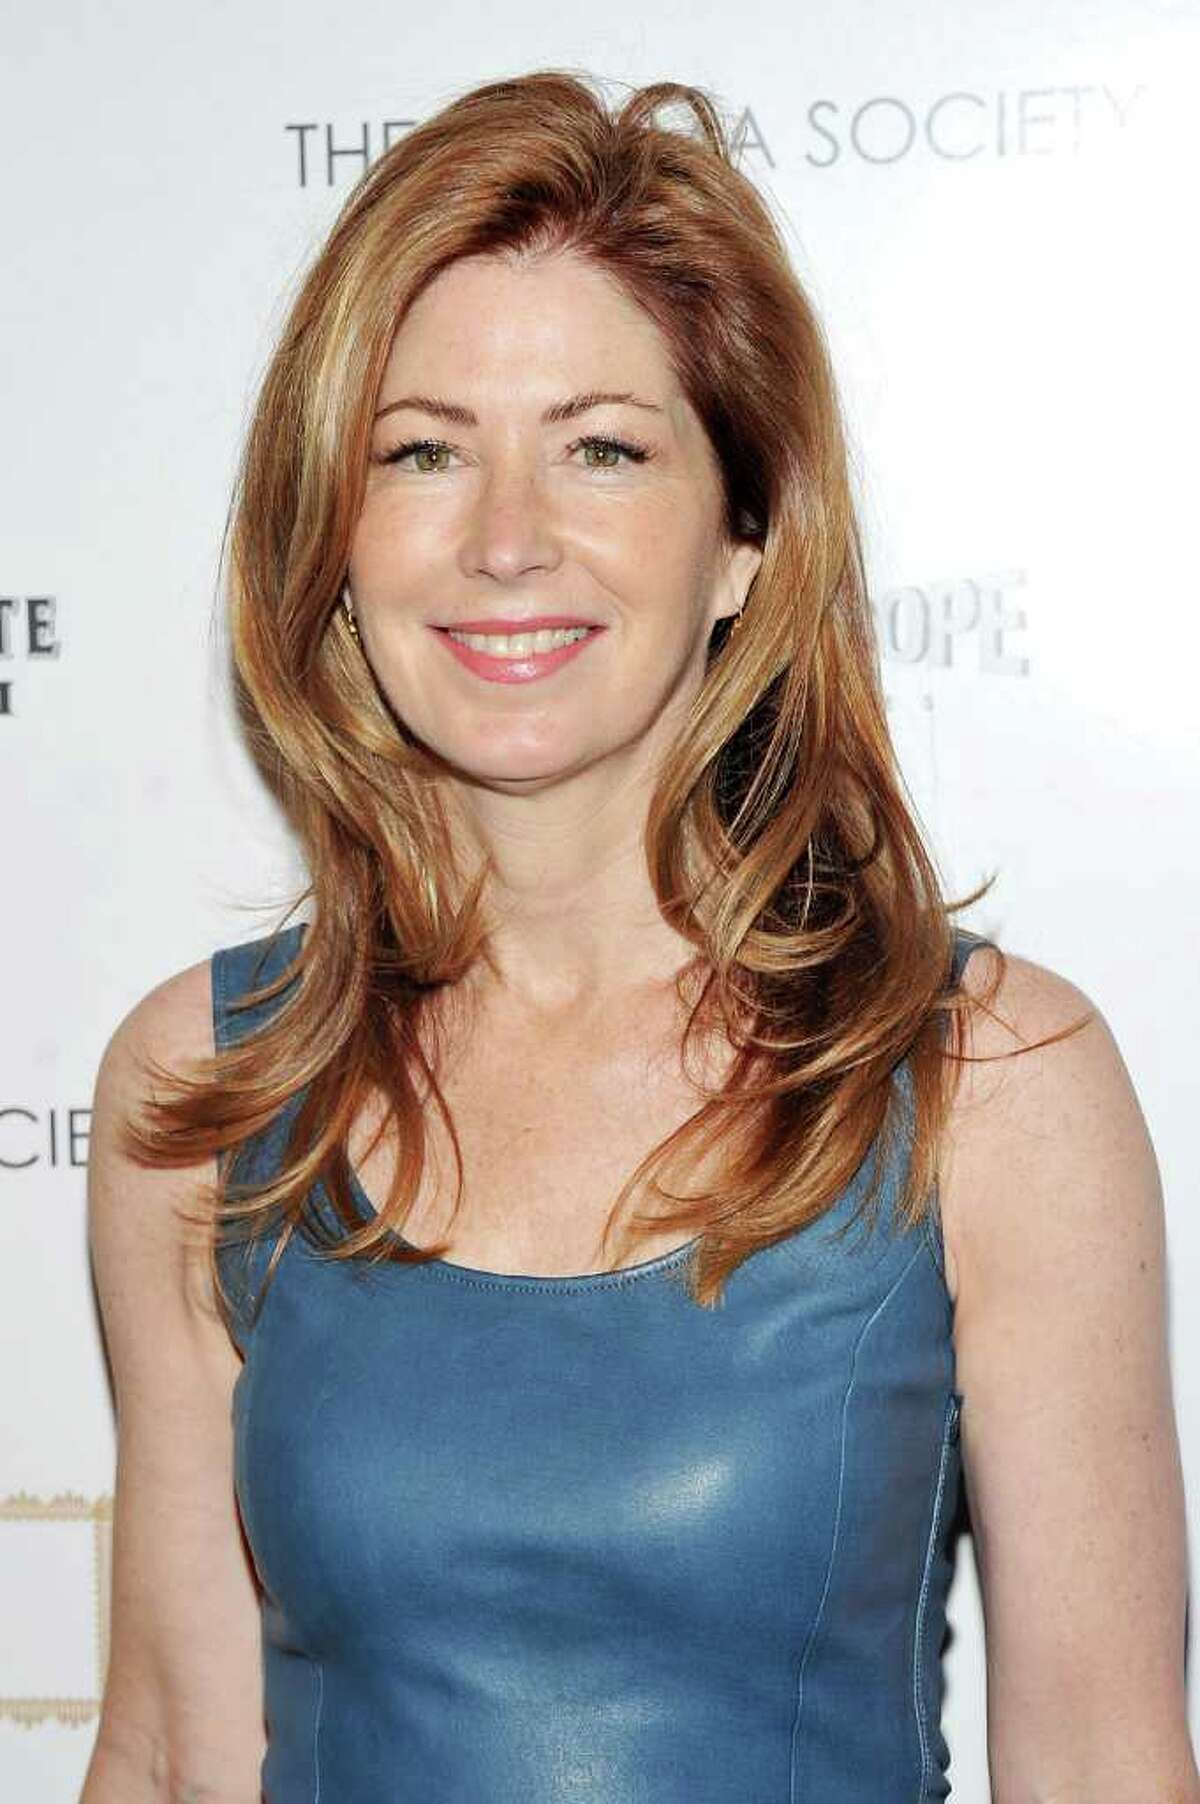 People Magazines Most Beautiful People of 2011: Actress Dana Delany